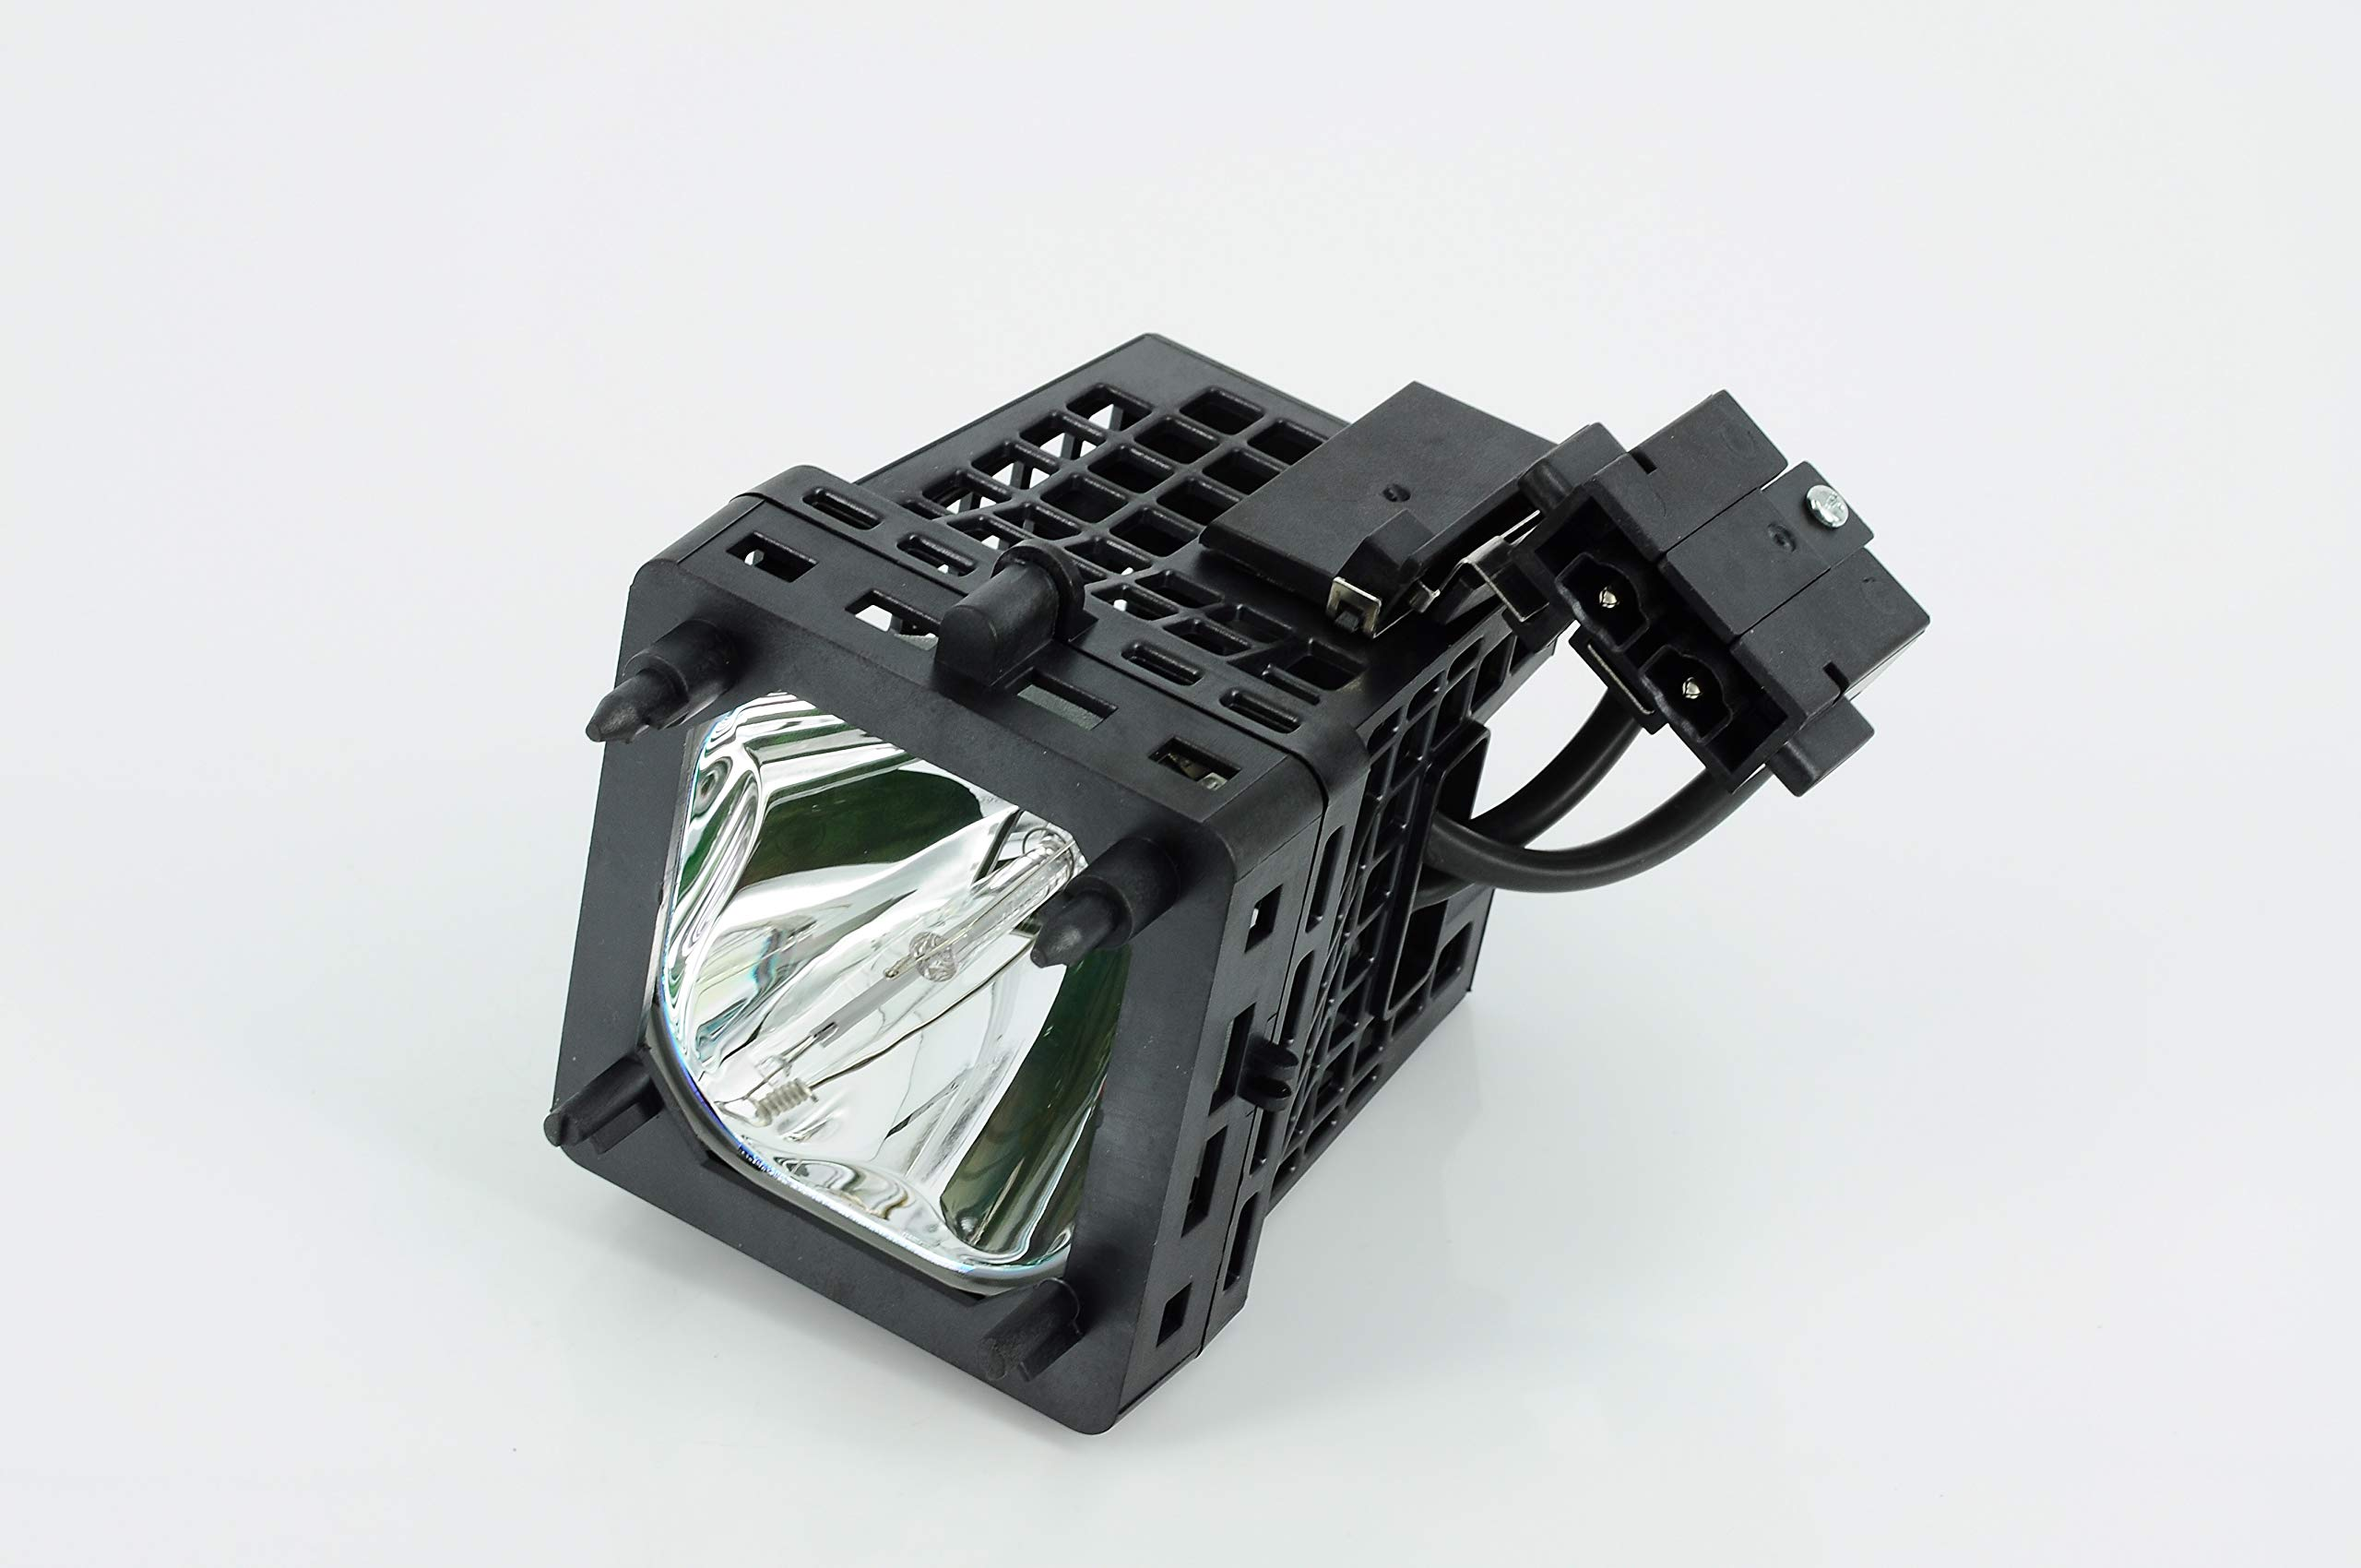 XL-5200 Replacement TV Lamp 120 Watts,Life time is 3000 Hours and 180 Days Warranty for Sony Projectors (XL5200)